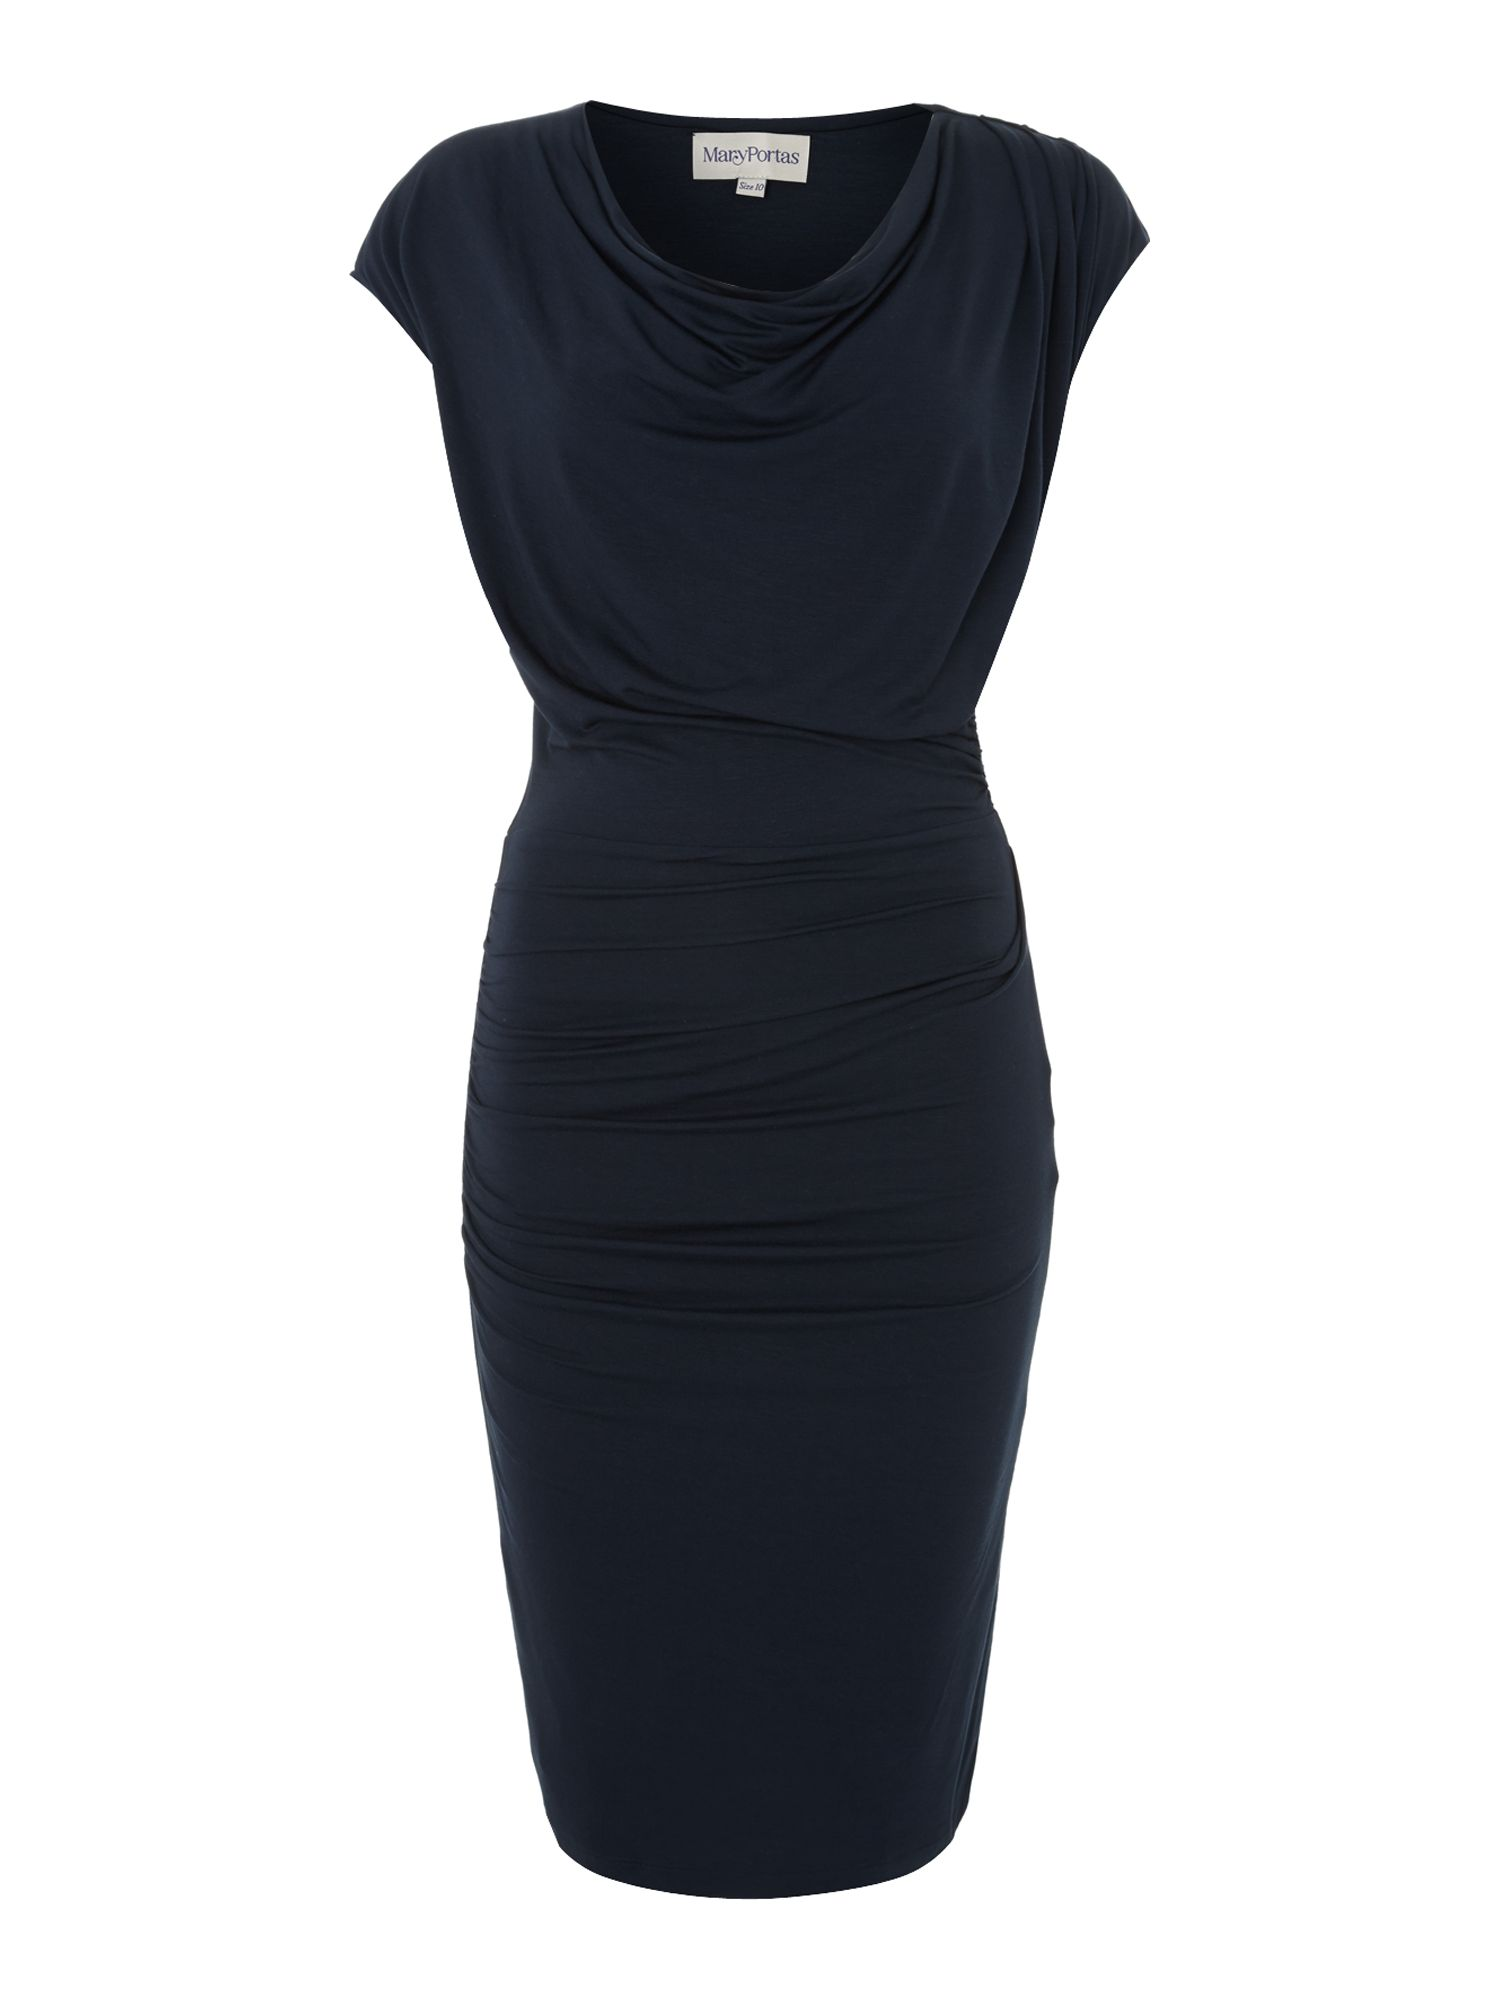 Powermesh cowl twist and tuck dress